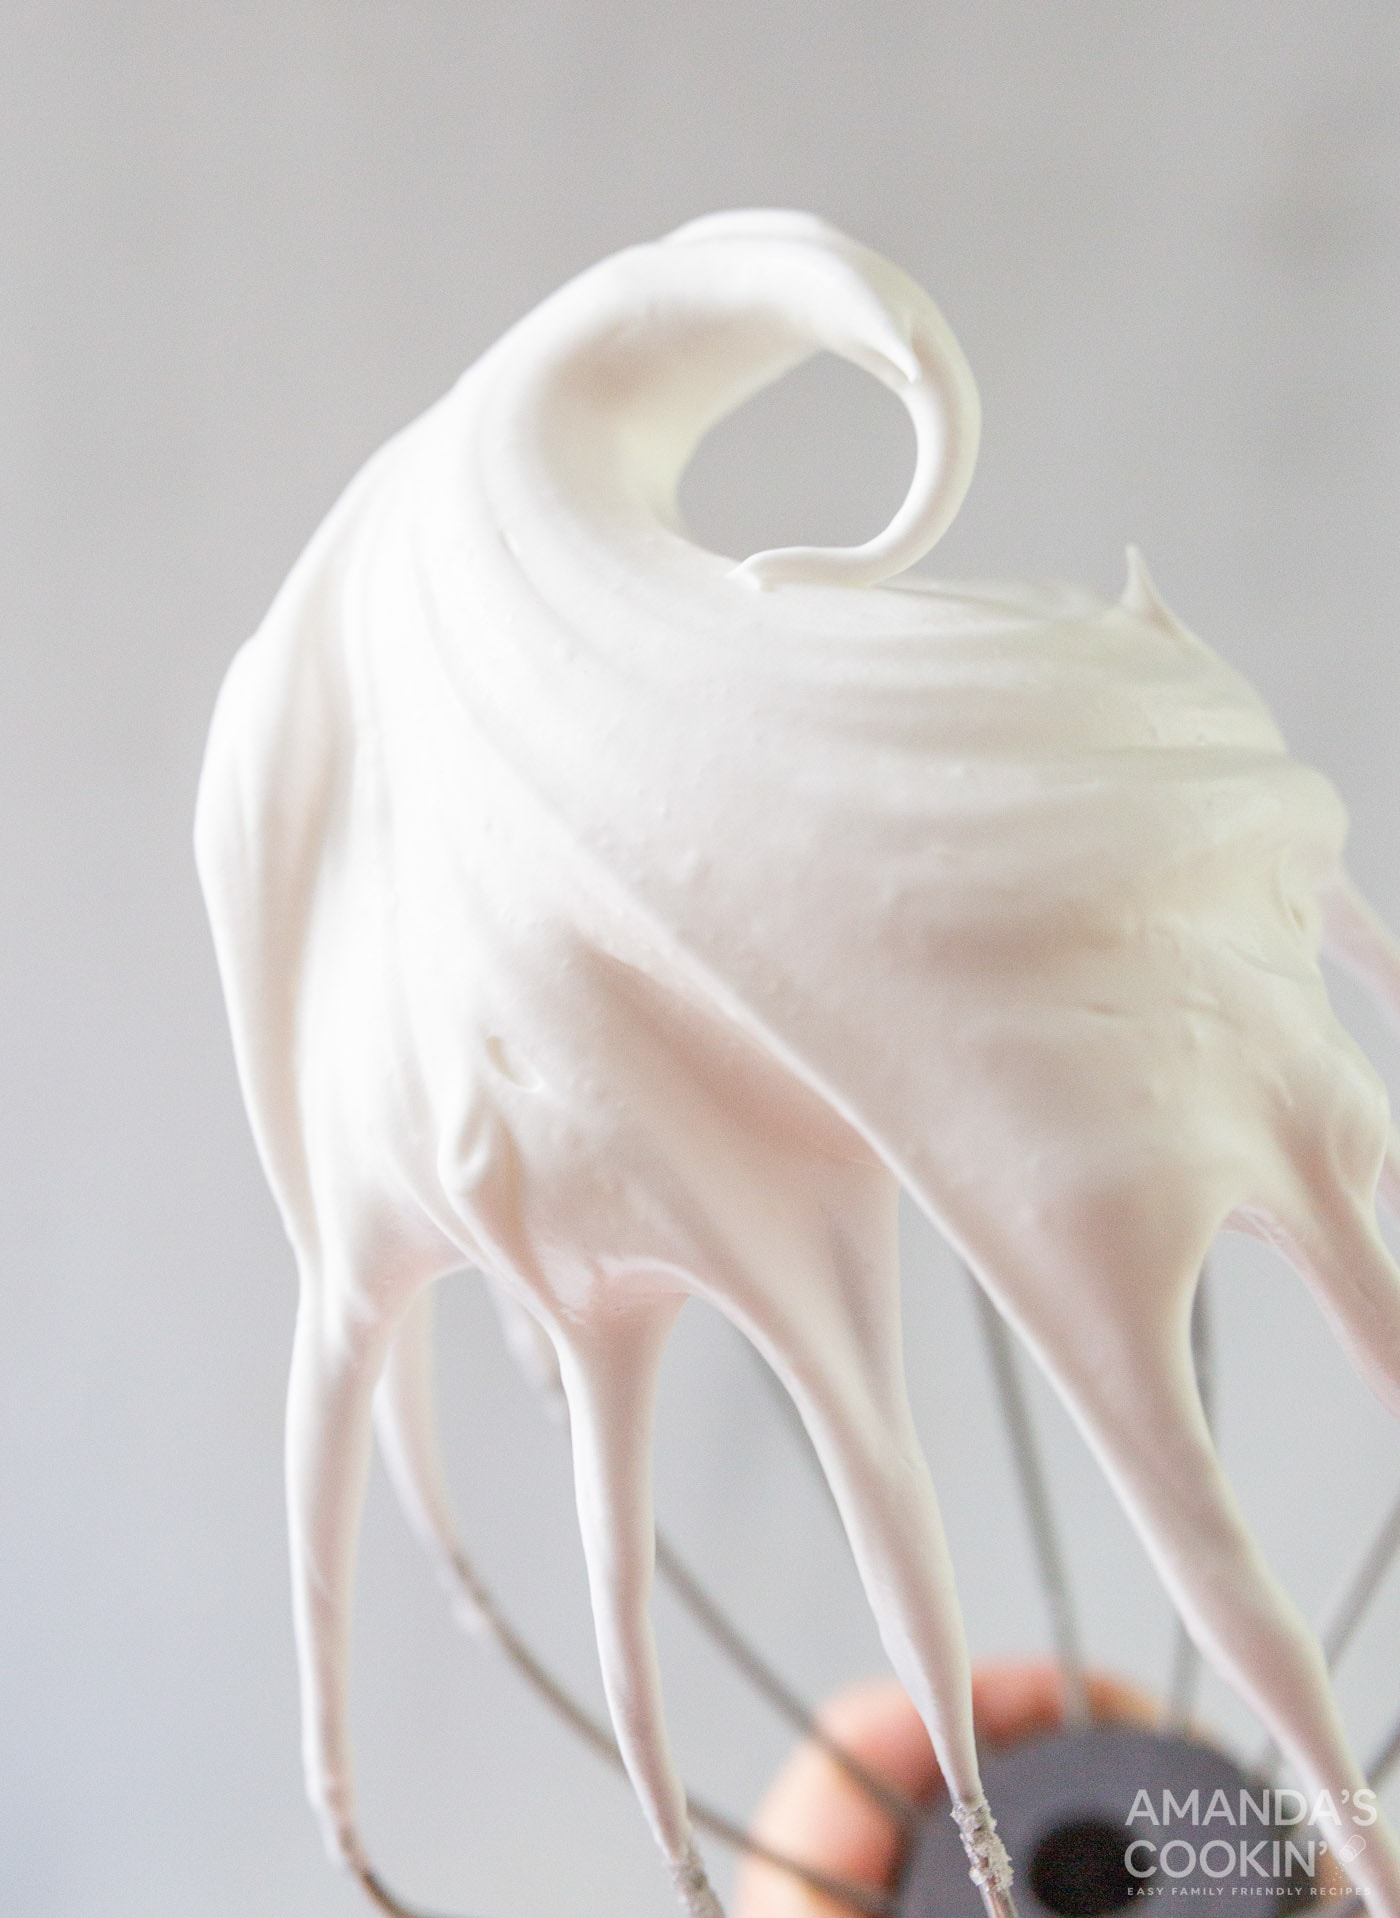 meringue on a beater whisk